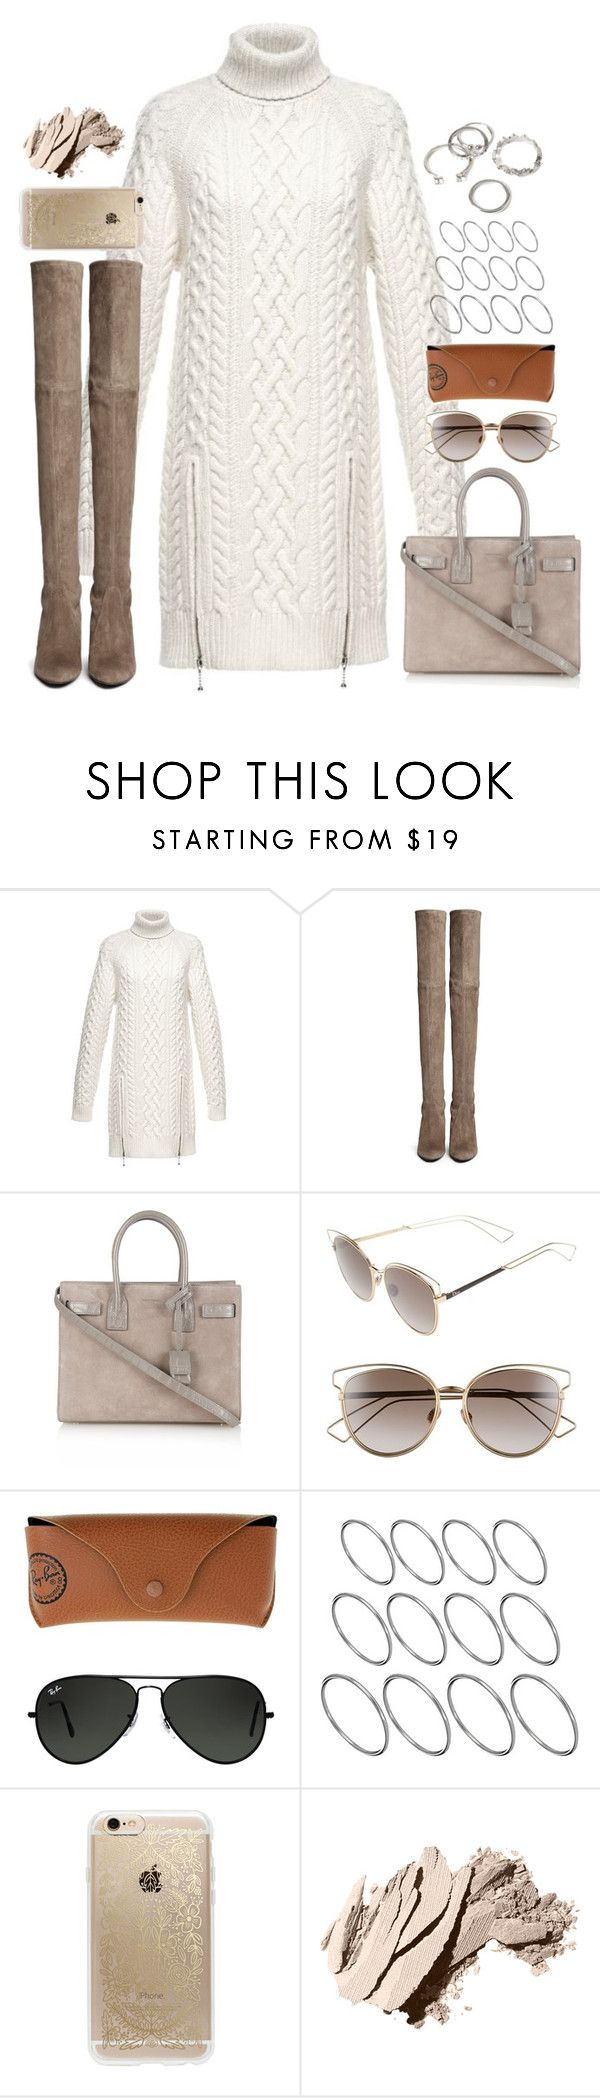 """Untitled#4362"" by fashionnfacts ❤ liked on Polyvore featuring Alexander Wang, Stuart Weitzman, Yves Saint Laurent, Christian Dior, Ray-Ban, ASOS, Rifle Paper Co, Bobbi Brown Cosmetics and Forever 21"